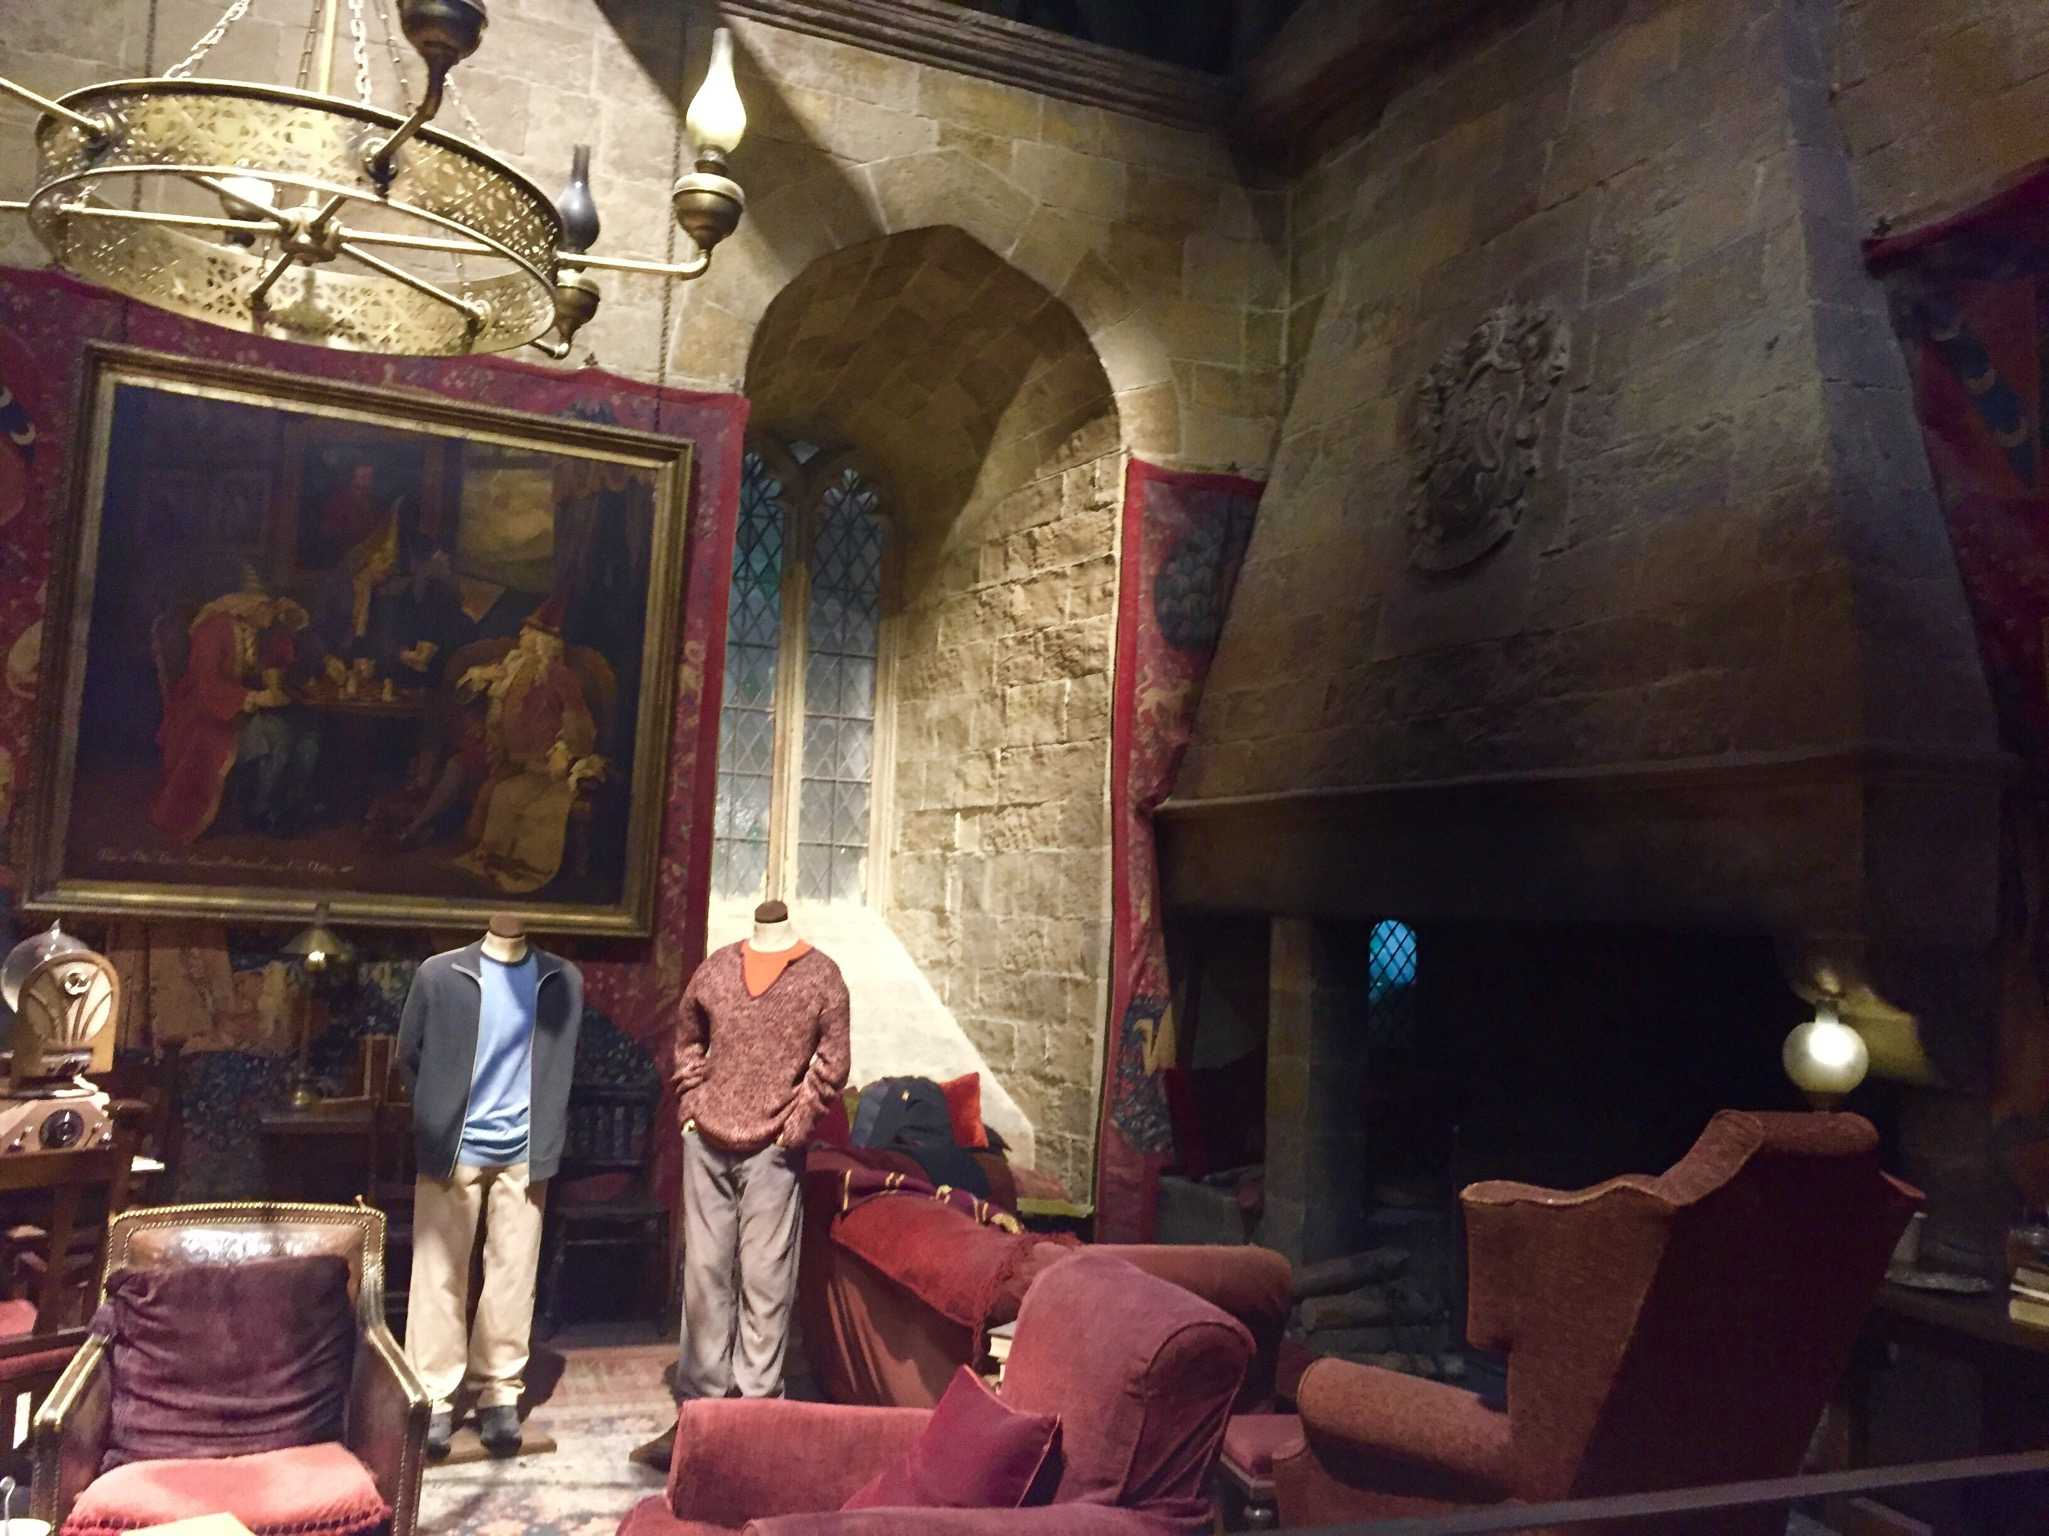 CHILL IN THE DORMS: While at the Hogwarts boarding school, you can hang out in the Common Room with both the boys and girls in your house. Picture above is the Gryffindor Common Room.